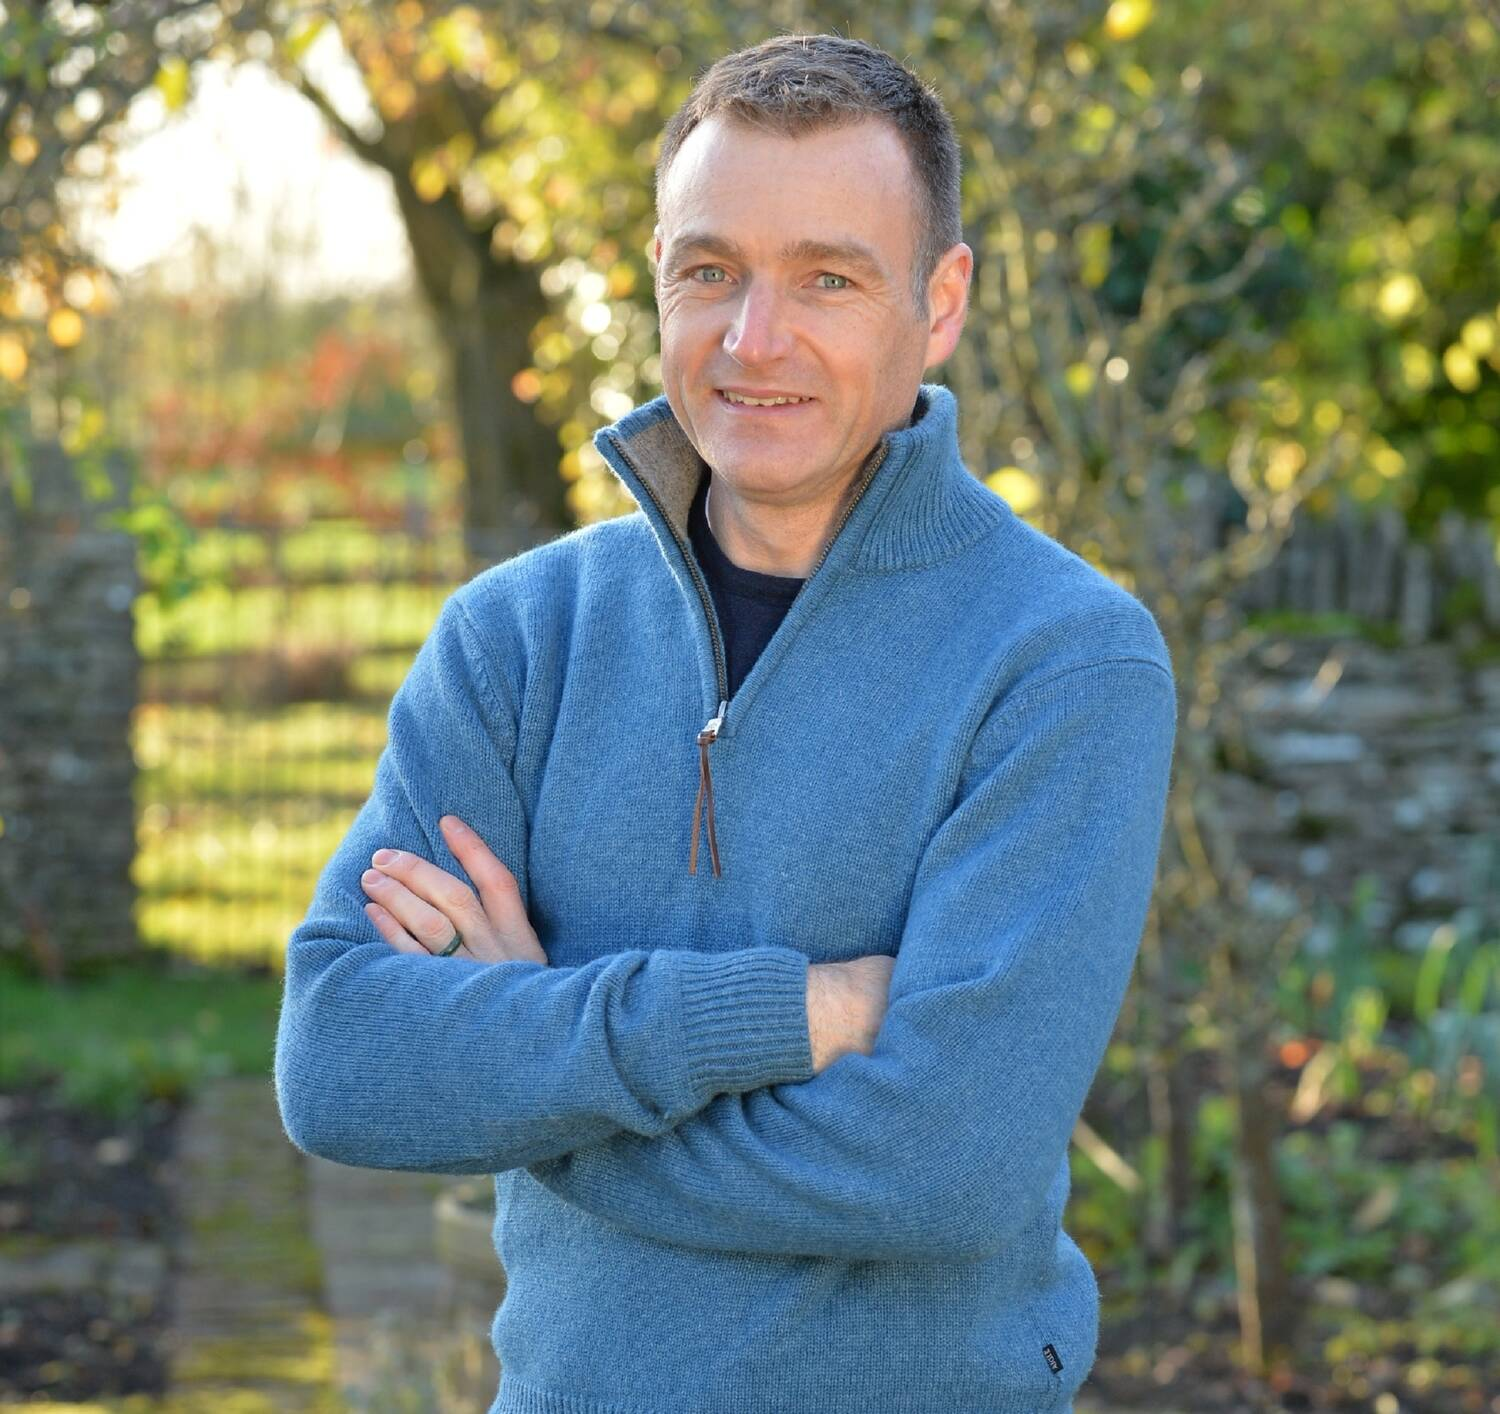 Chris Beardshaw stands in a garden, smiling at the camera with his arms folded in front of him. He wears a bright blue woolly jumper, with a half zip.